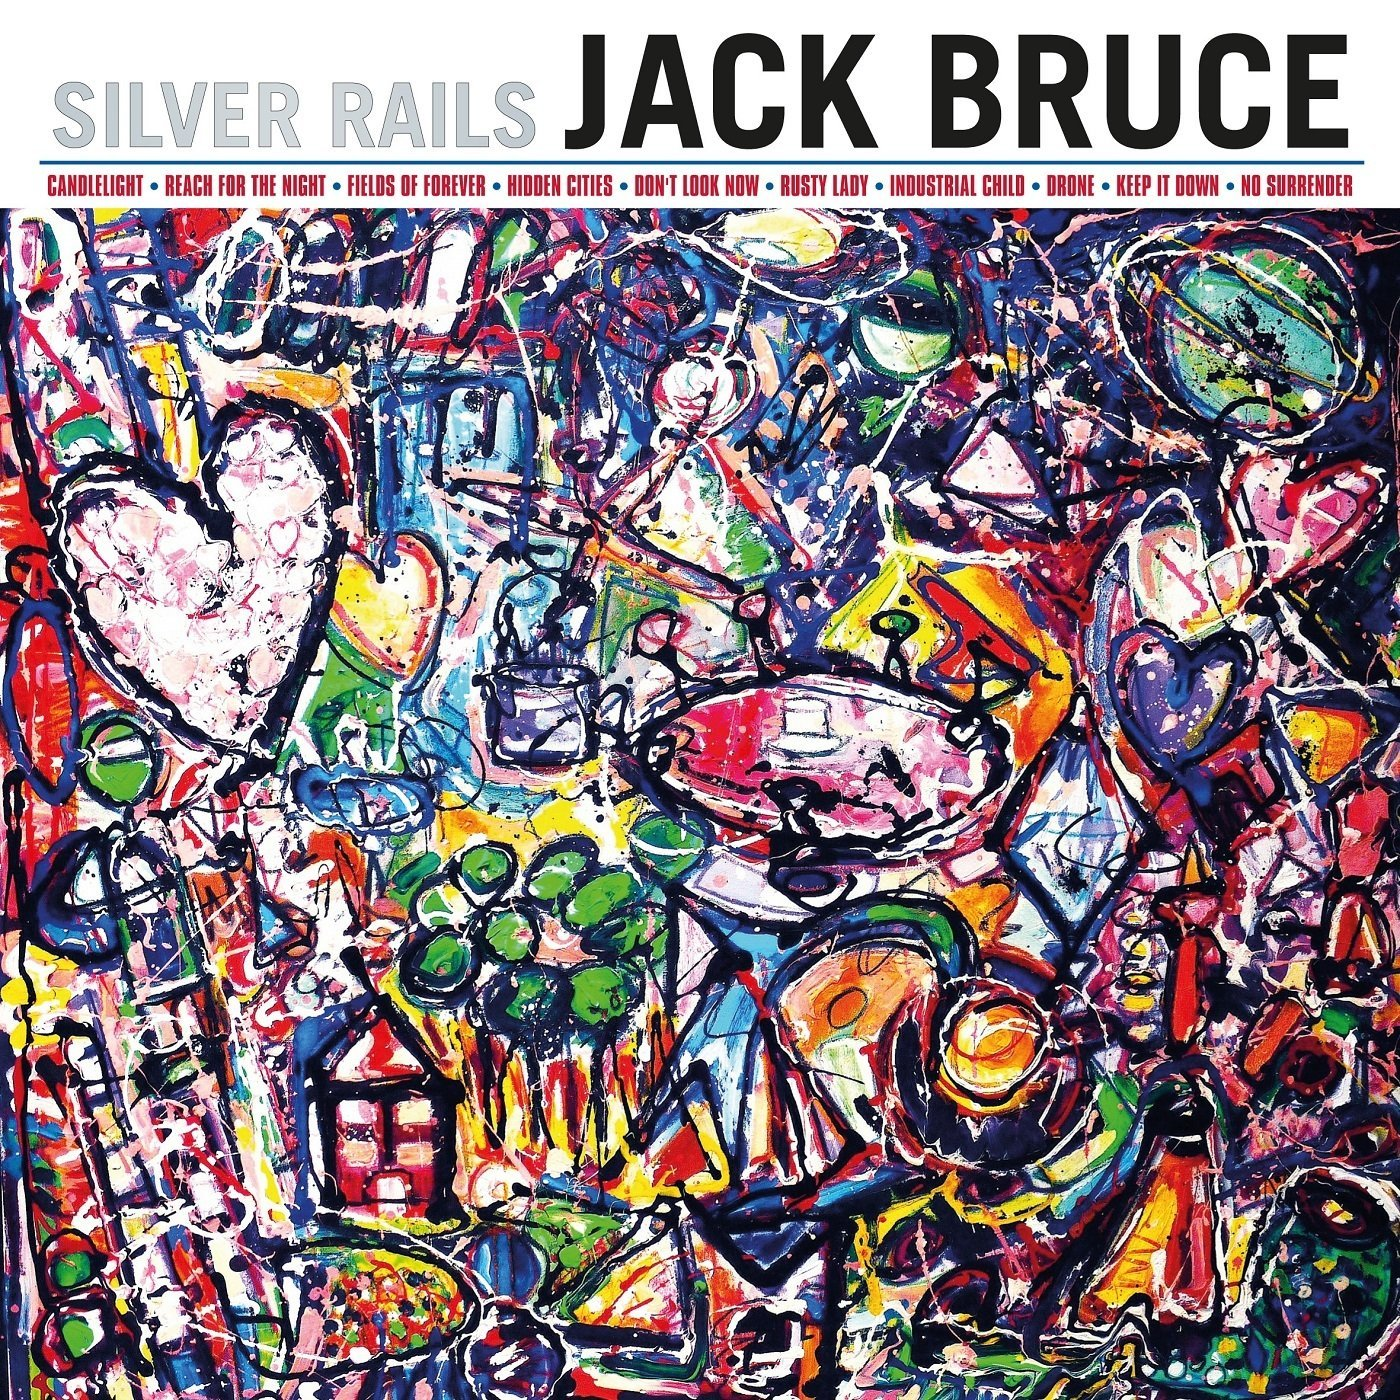 INTERVIEW: Jack Bruce